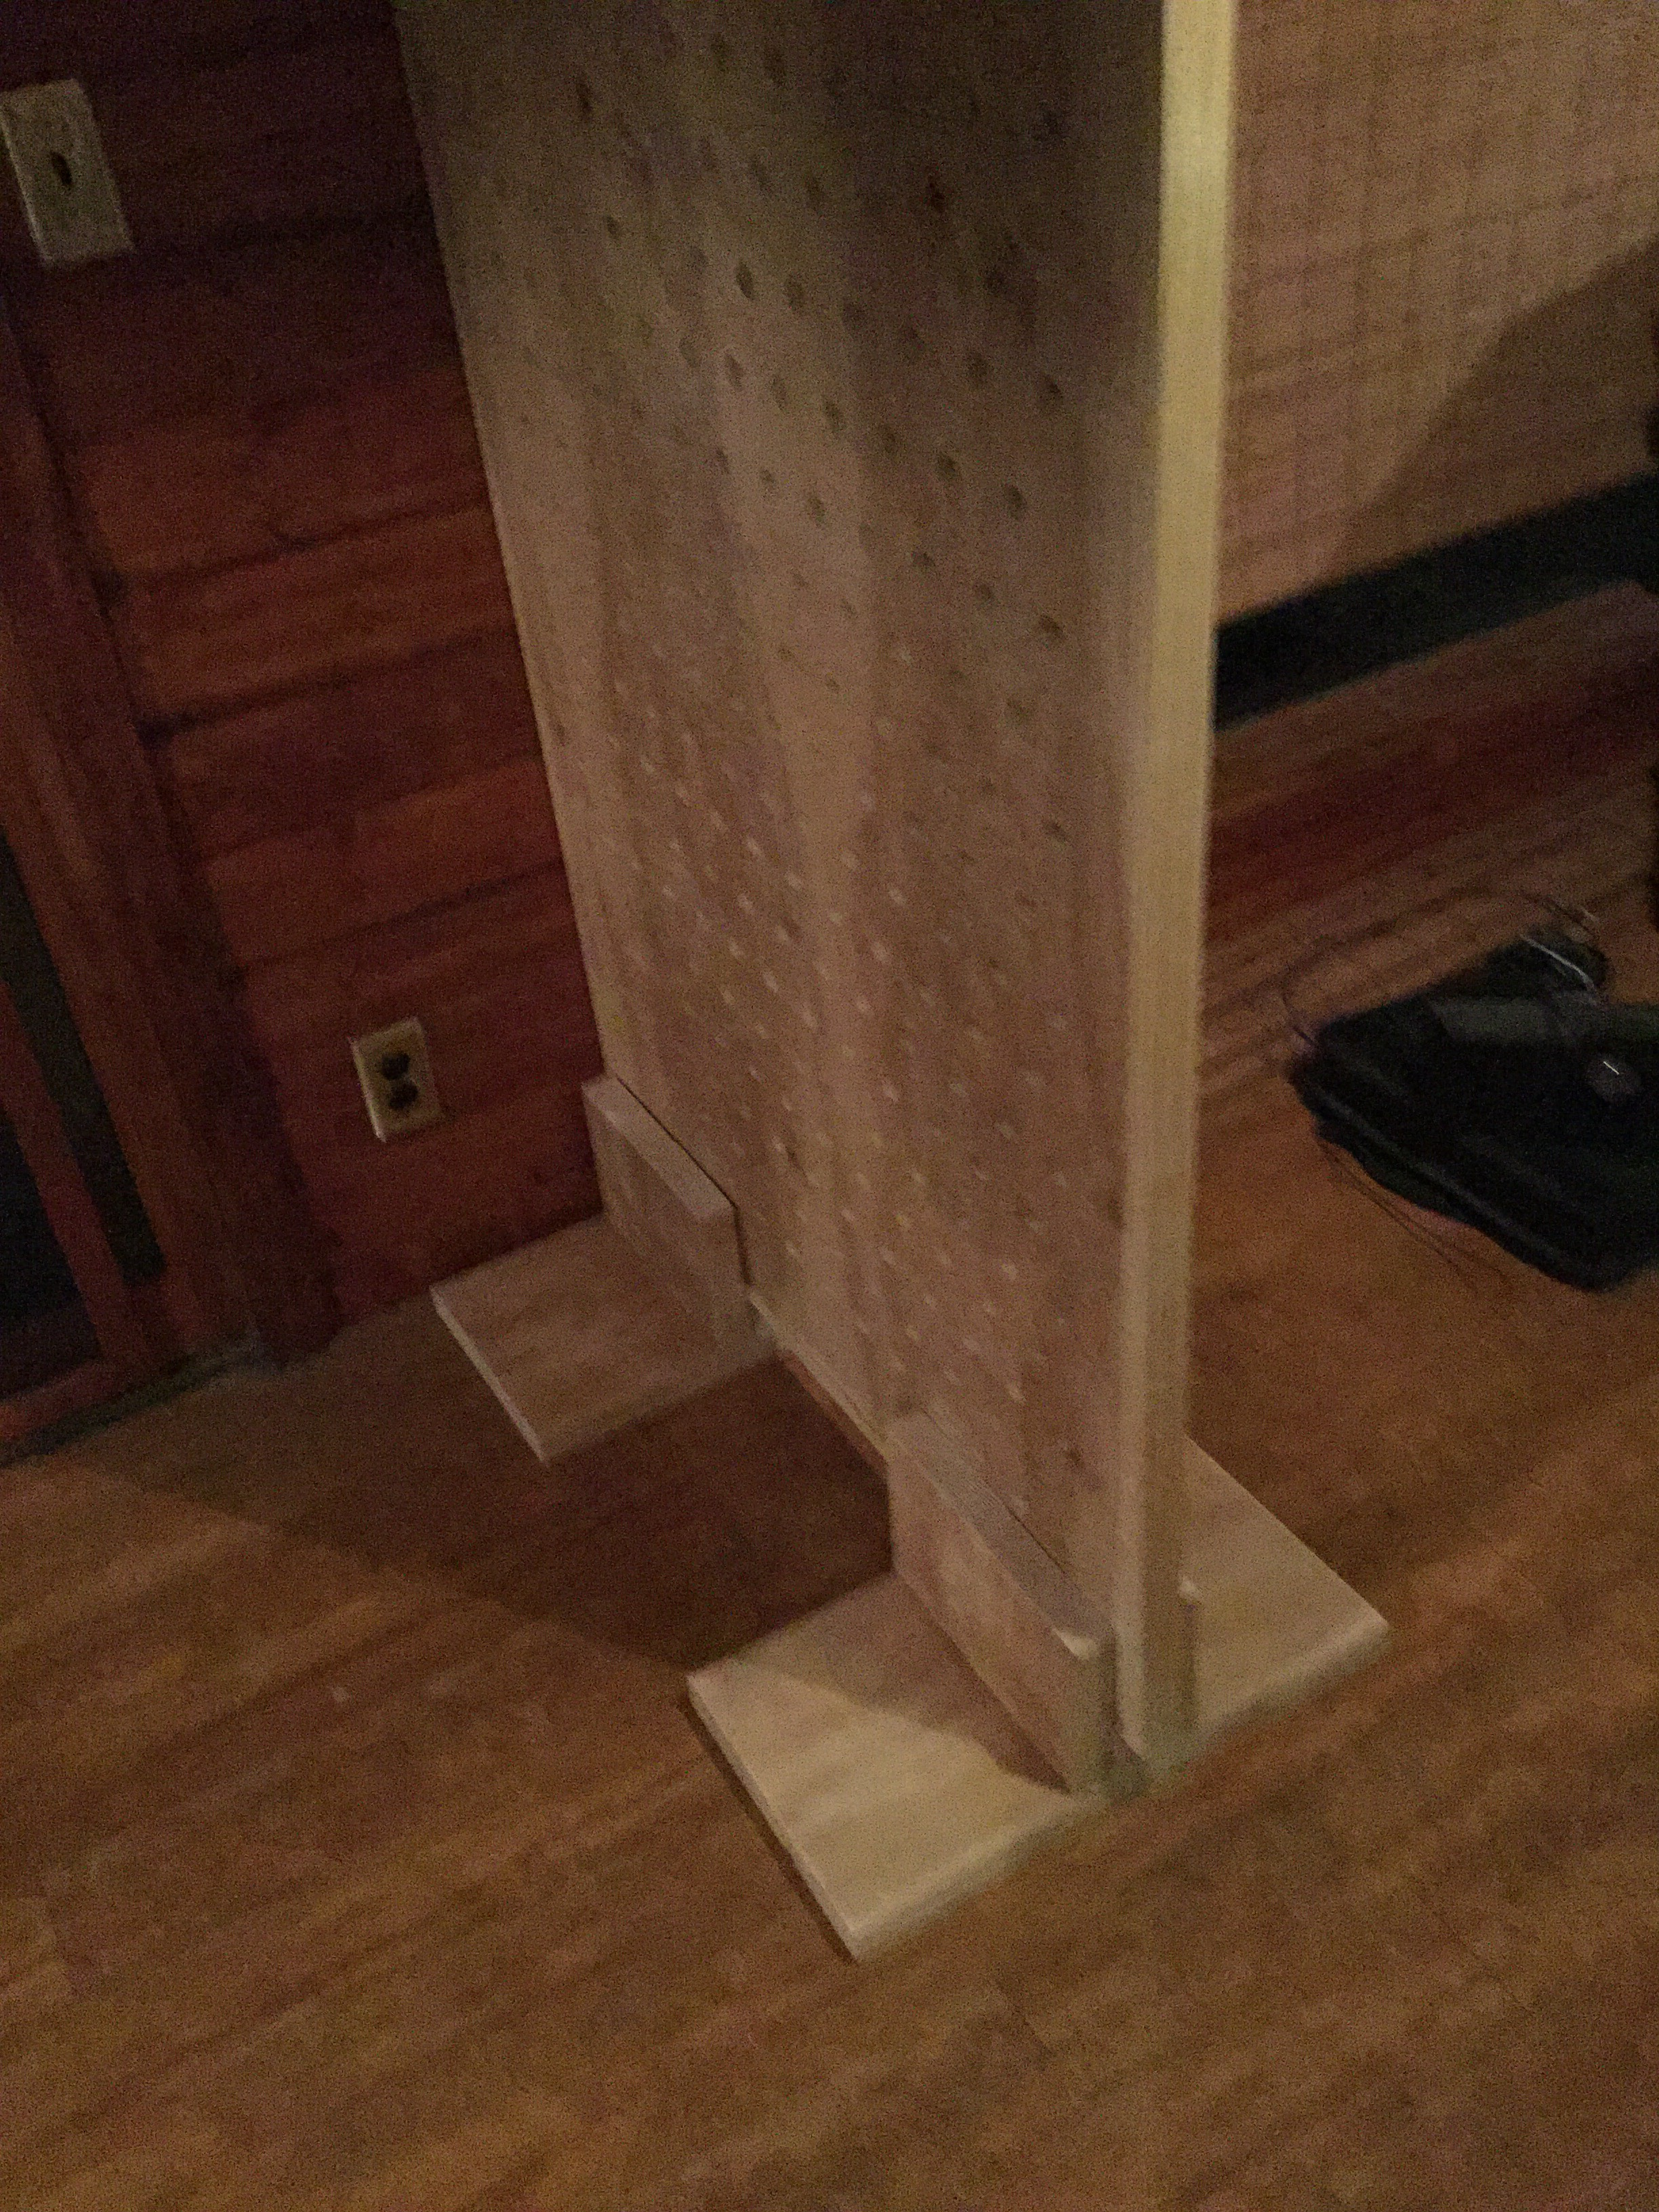 Picture of Step 8: Position Backboard in Base and Add Partially Assembled Pegs